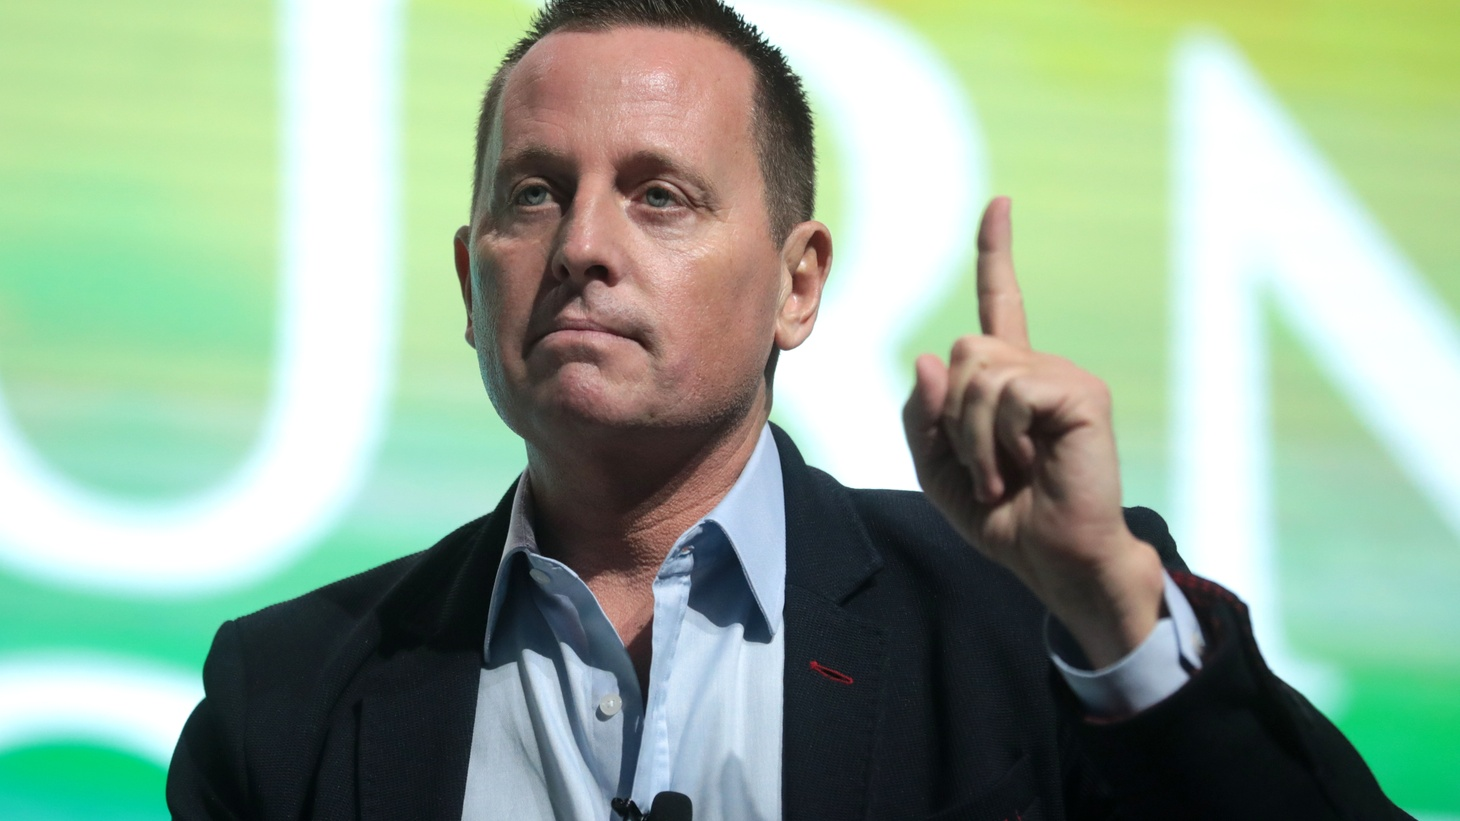 U.S. Ambassador to Germany Richard Grenell speaking at the 2019 Student Action Summit hosted by Turning Point USA at the Palm Beach County Convention Center in West Palm Beach, Florida.